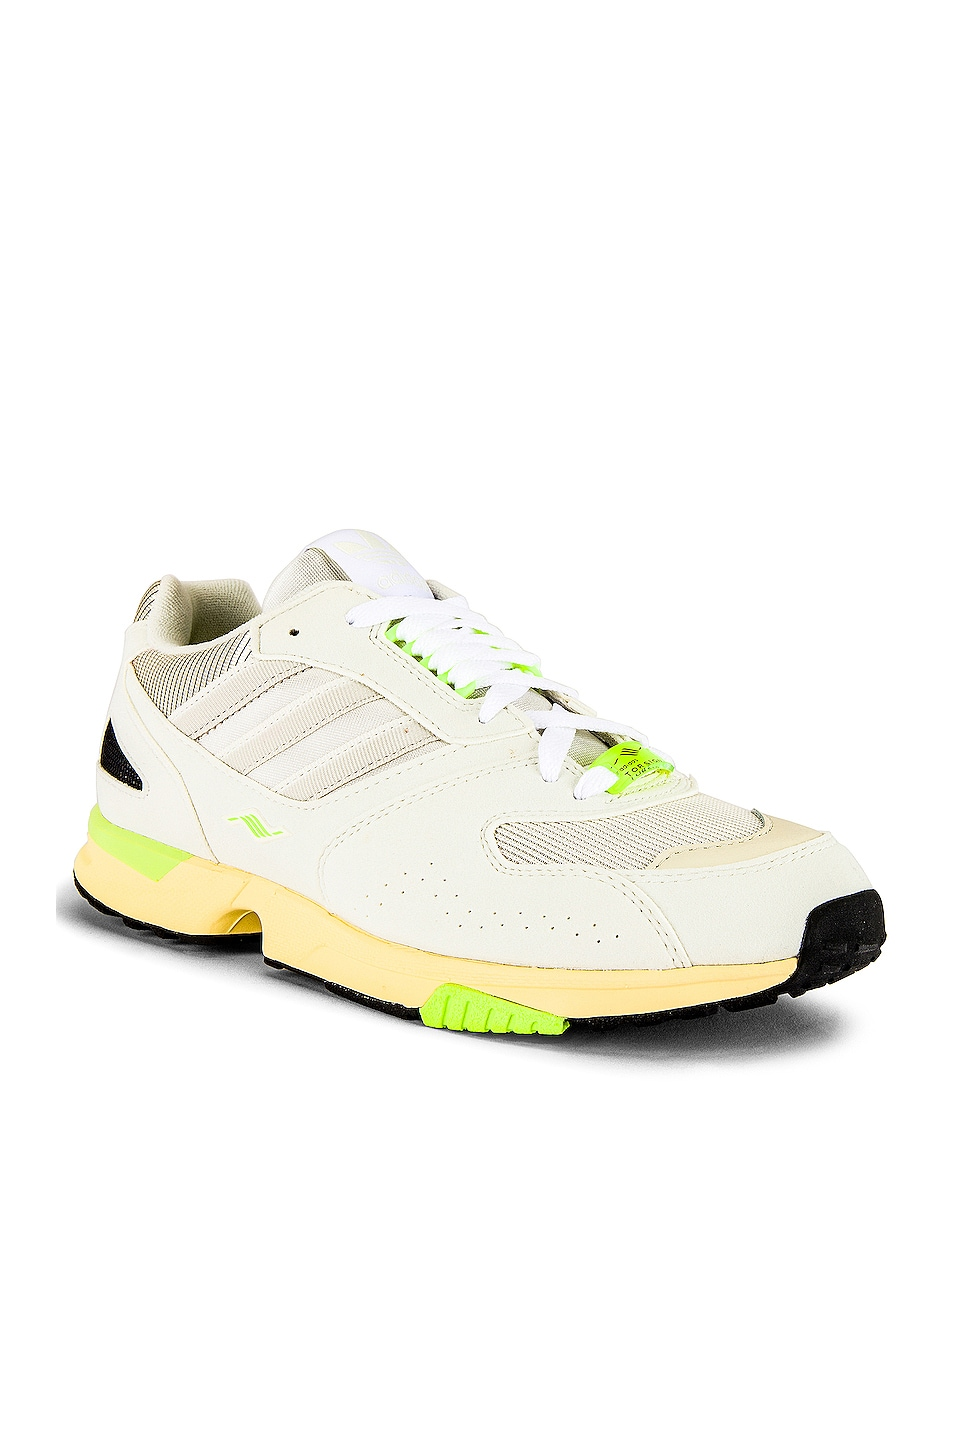 adidas Originals Adidas ZX 400 in Off White & White & Core White